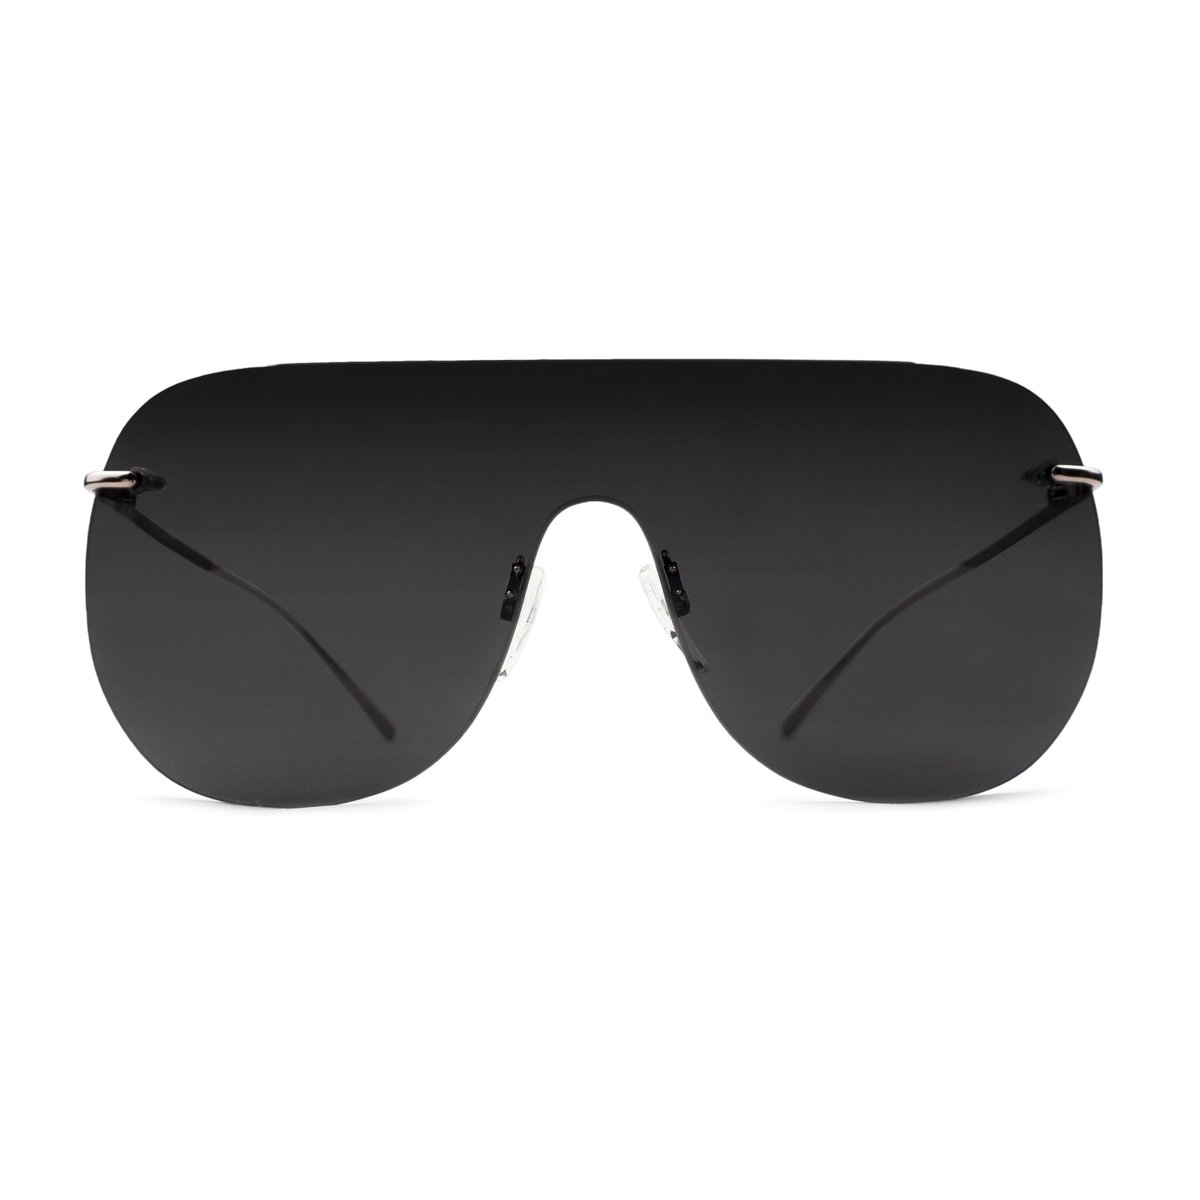 SW1W D-Frame Mask | Black by Sienna Alexander on curated-crowd.com